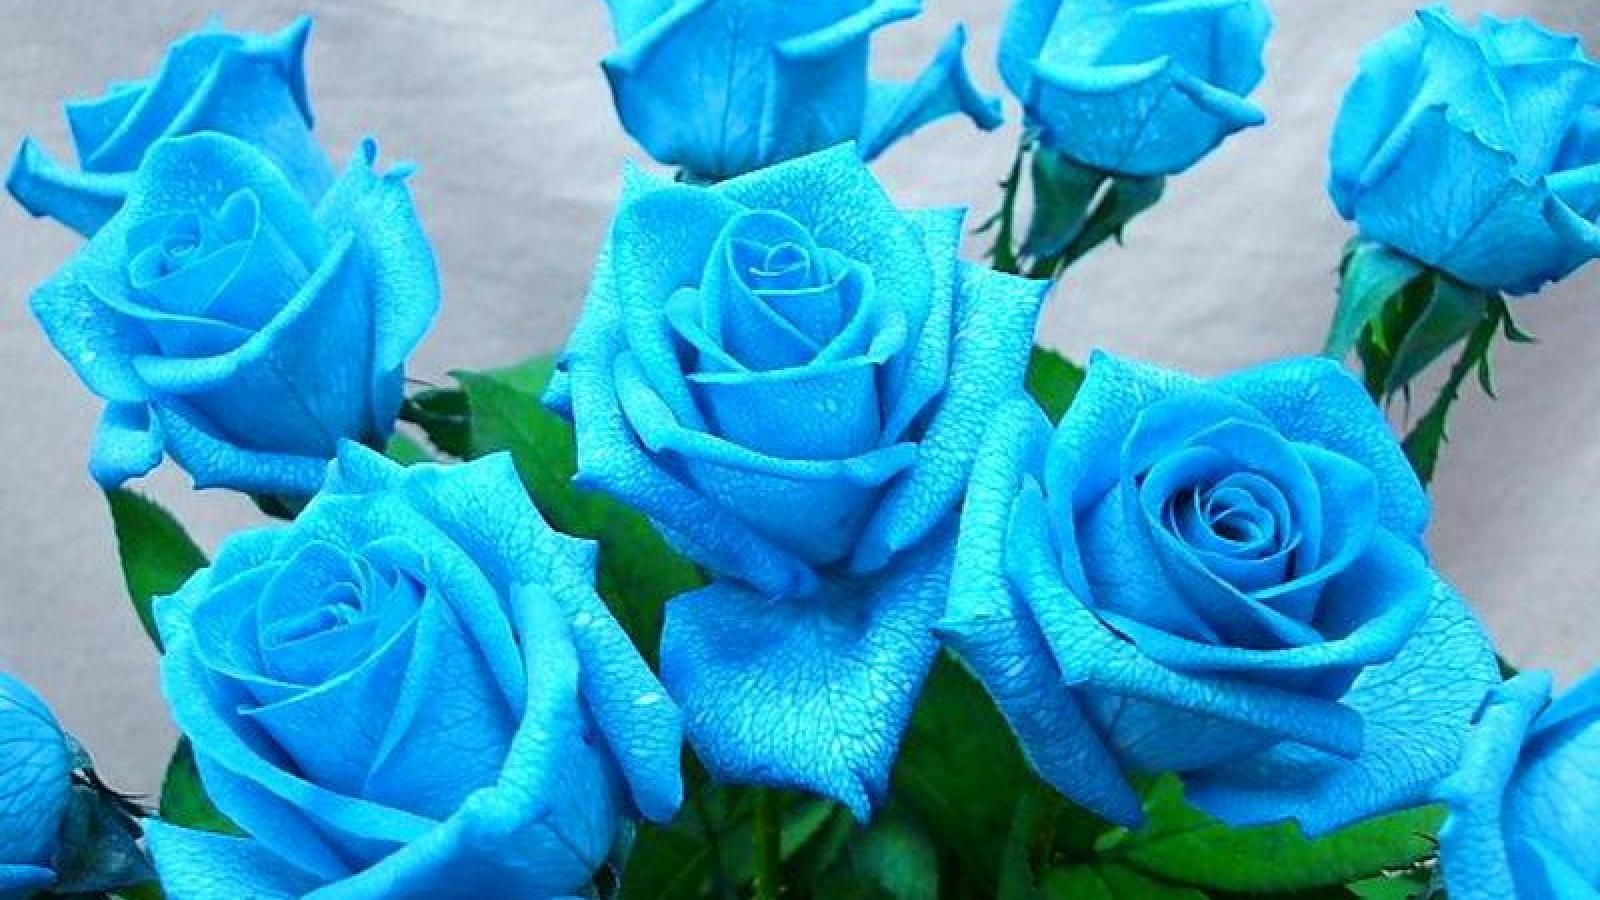 blue roses wallpaper | 1600x900 | #66285 | roses | pinterest | rose